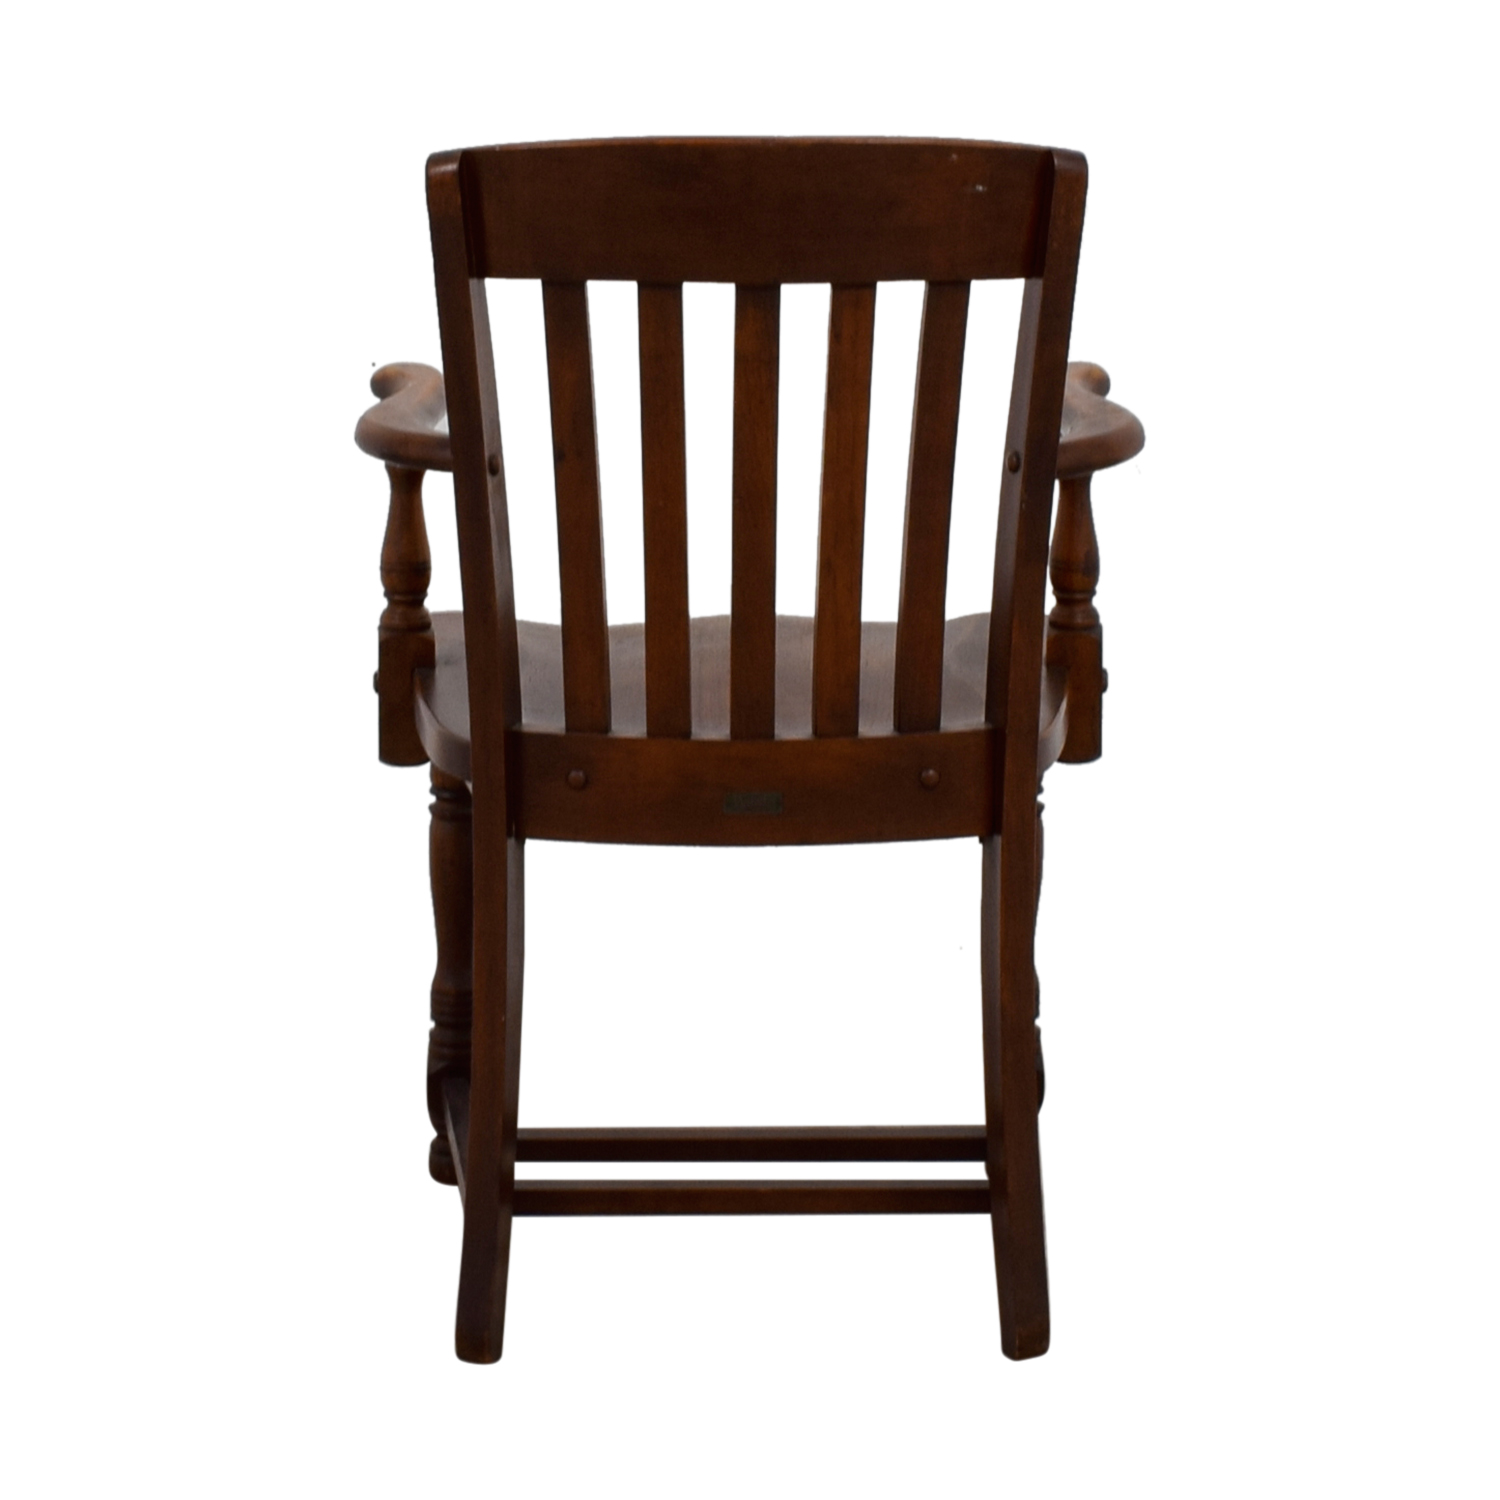 Murphy Chair Company Murphy Chair Company Brown Wooden Captain Chair used